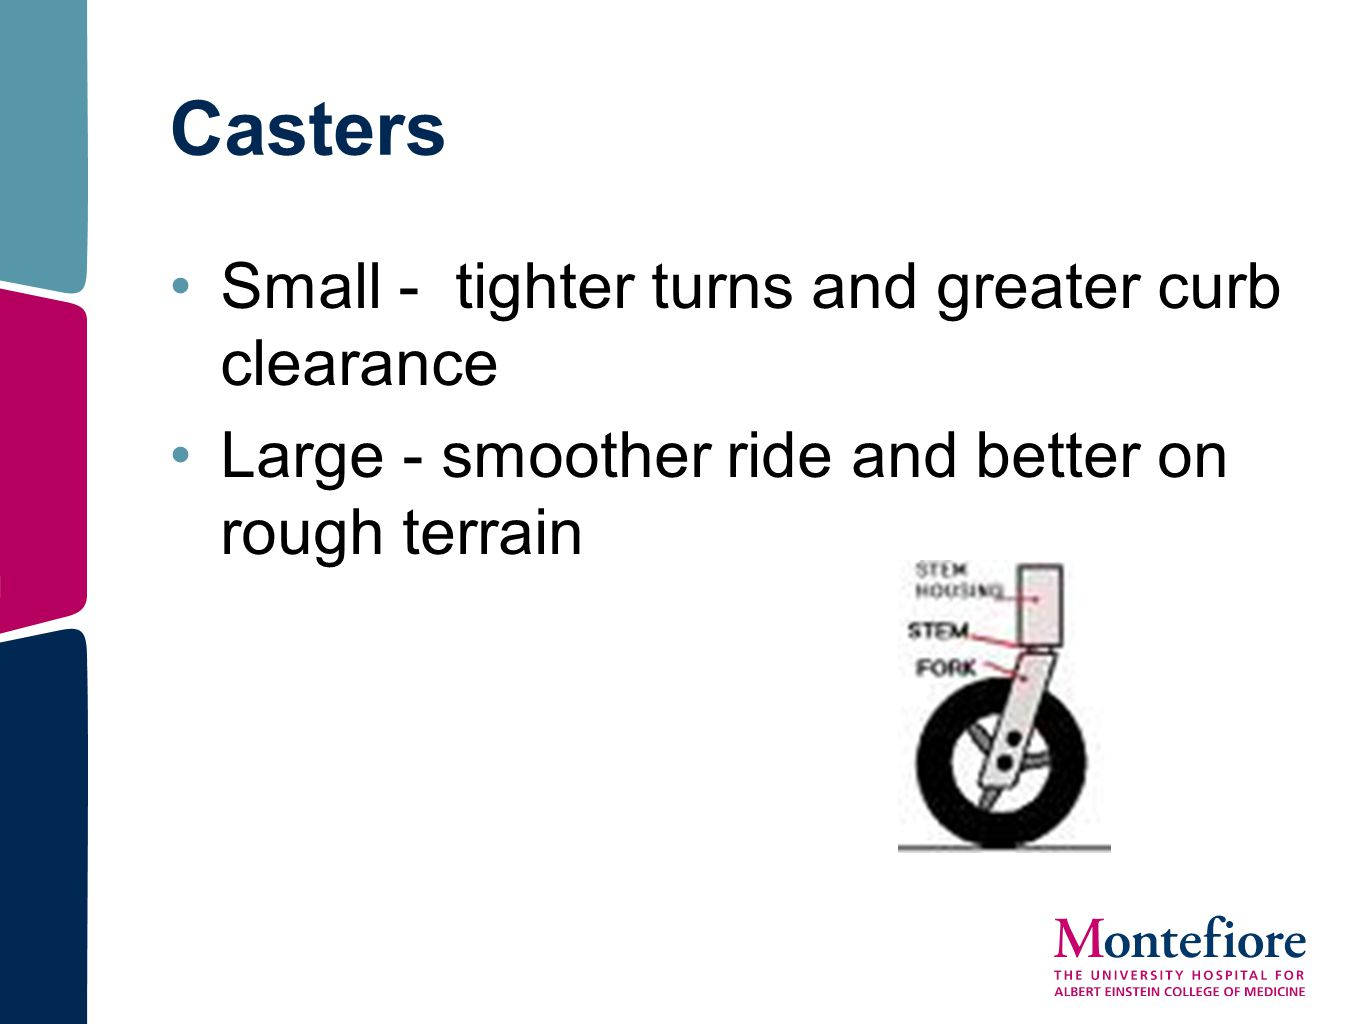 Casters Small - tighter turns and greater curb clearance Large - smoother ride and better on rough terrain